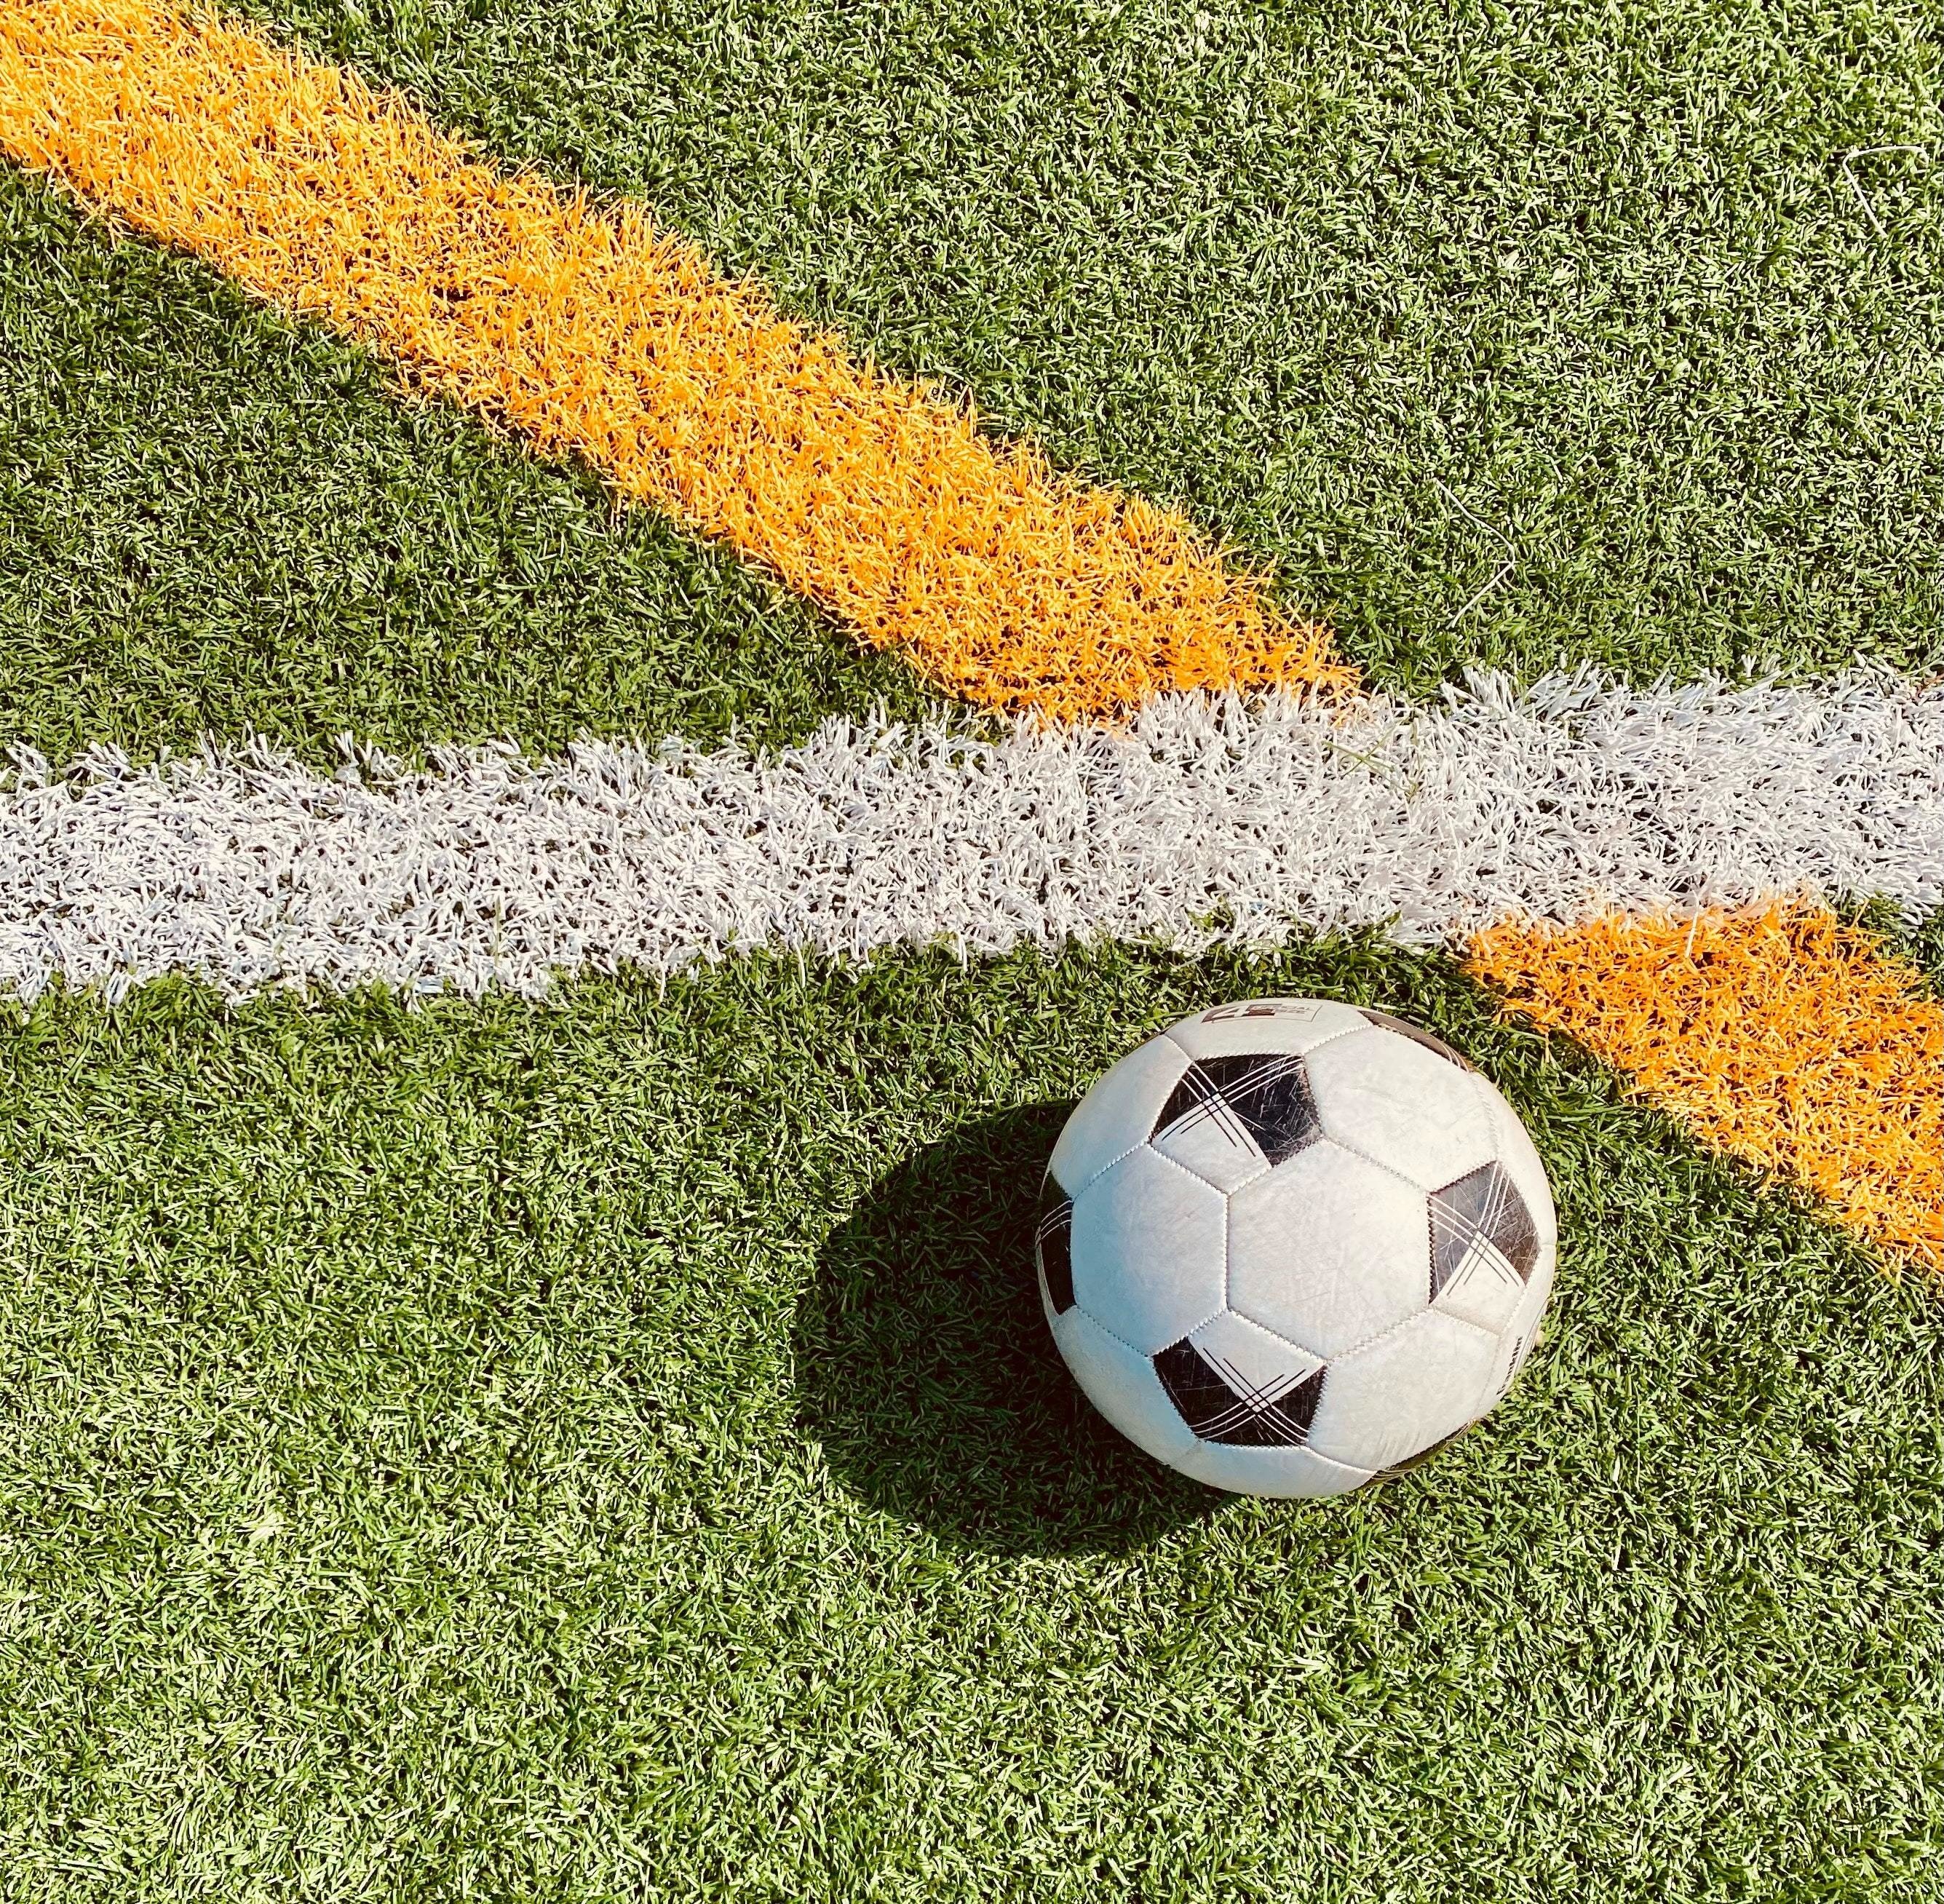 A soccer ball is pictured here.